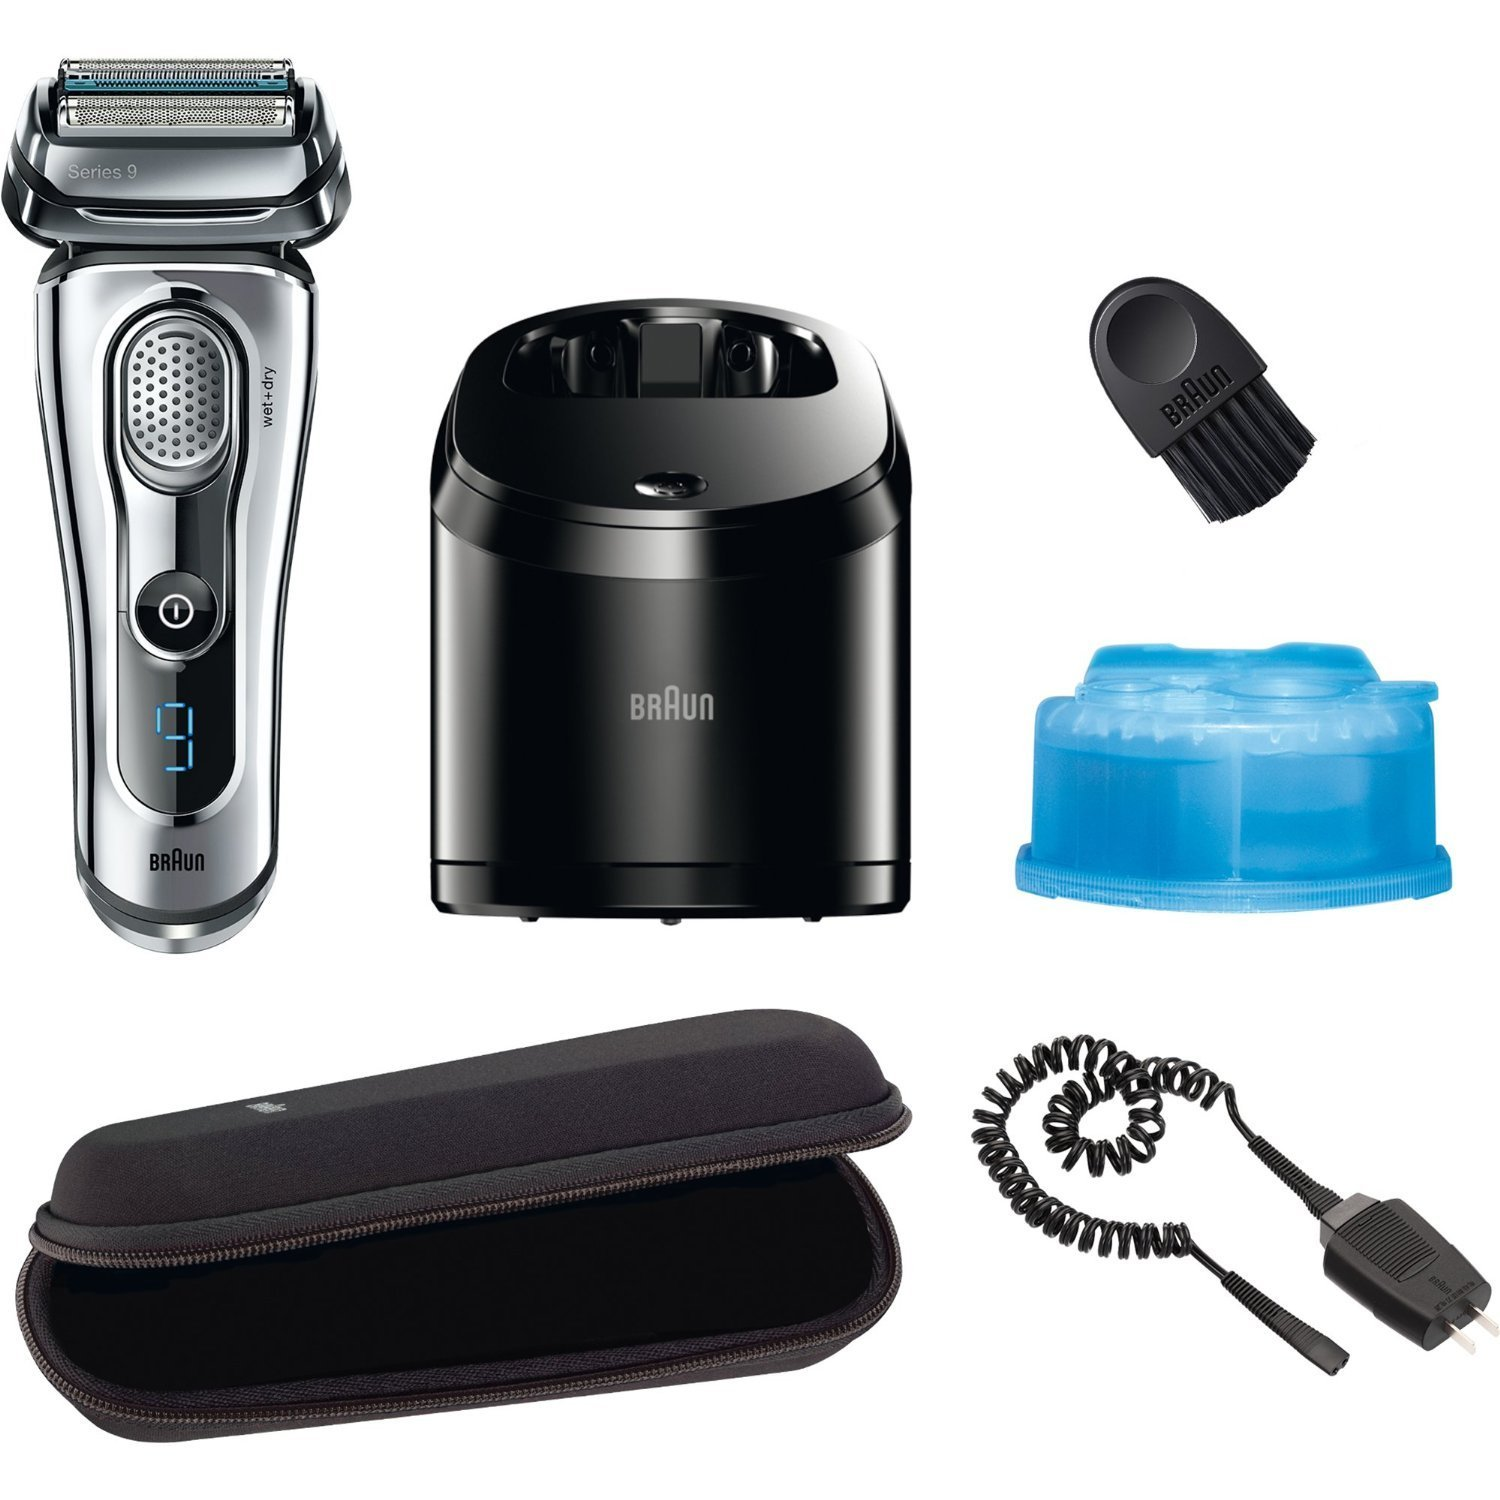 Braun Series 9-9095cc Review Accessories